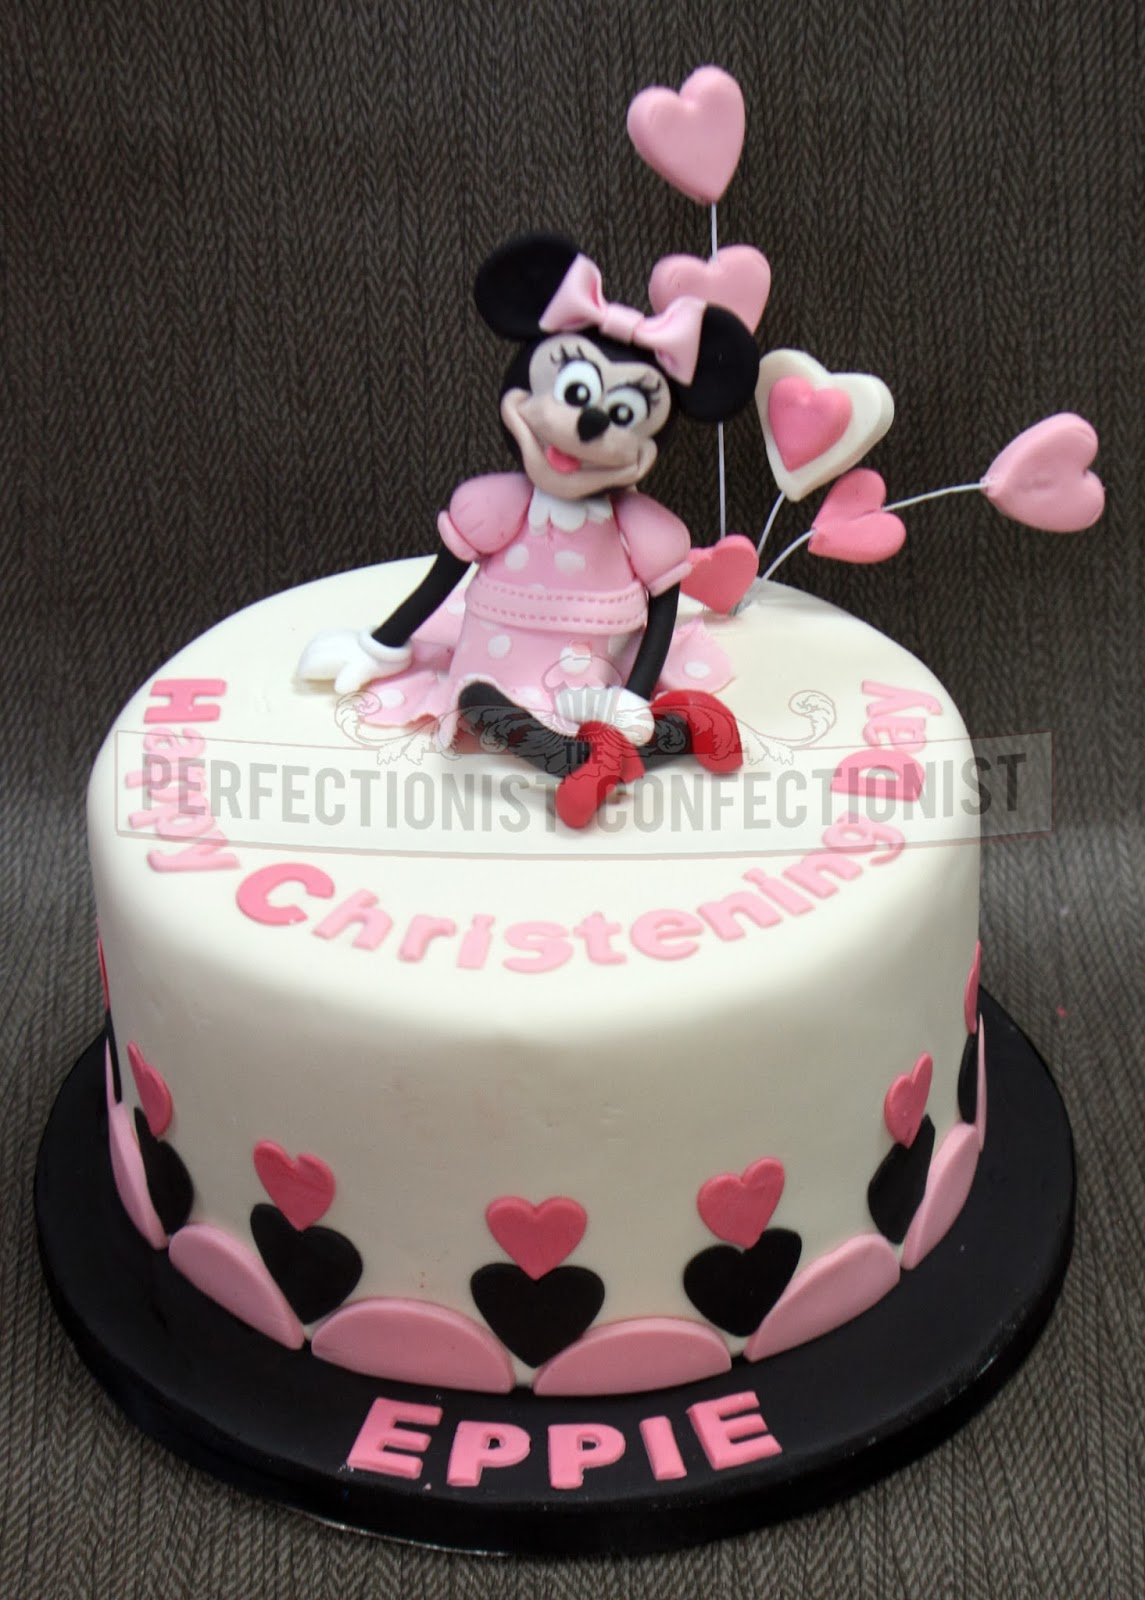 The Perfectionist Confectionist Minnie Mouse